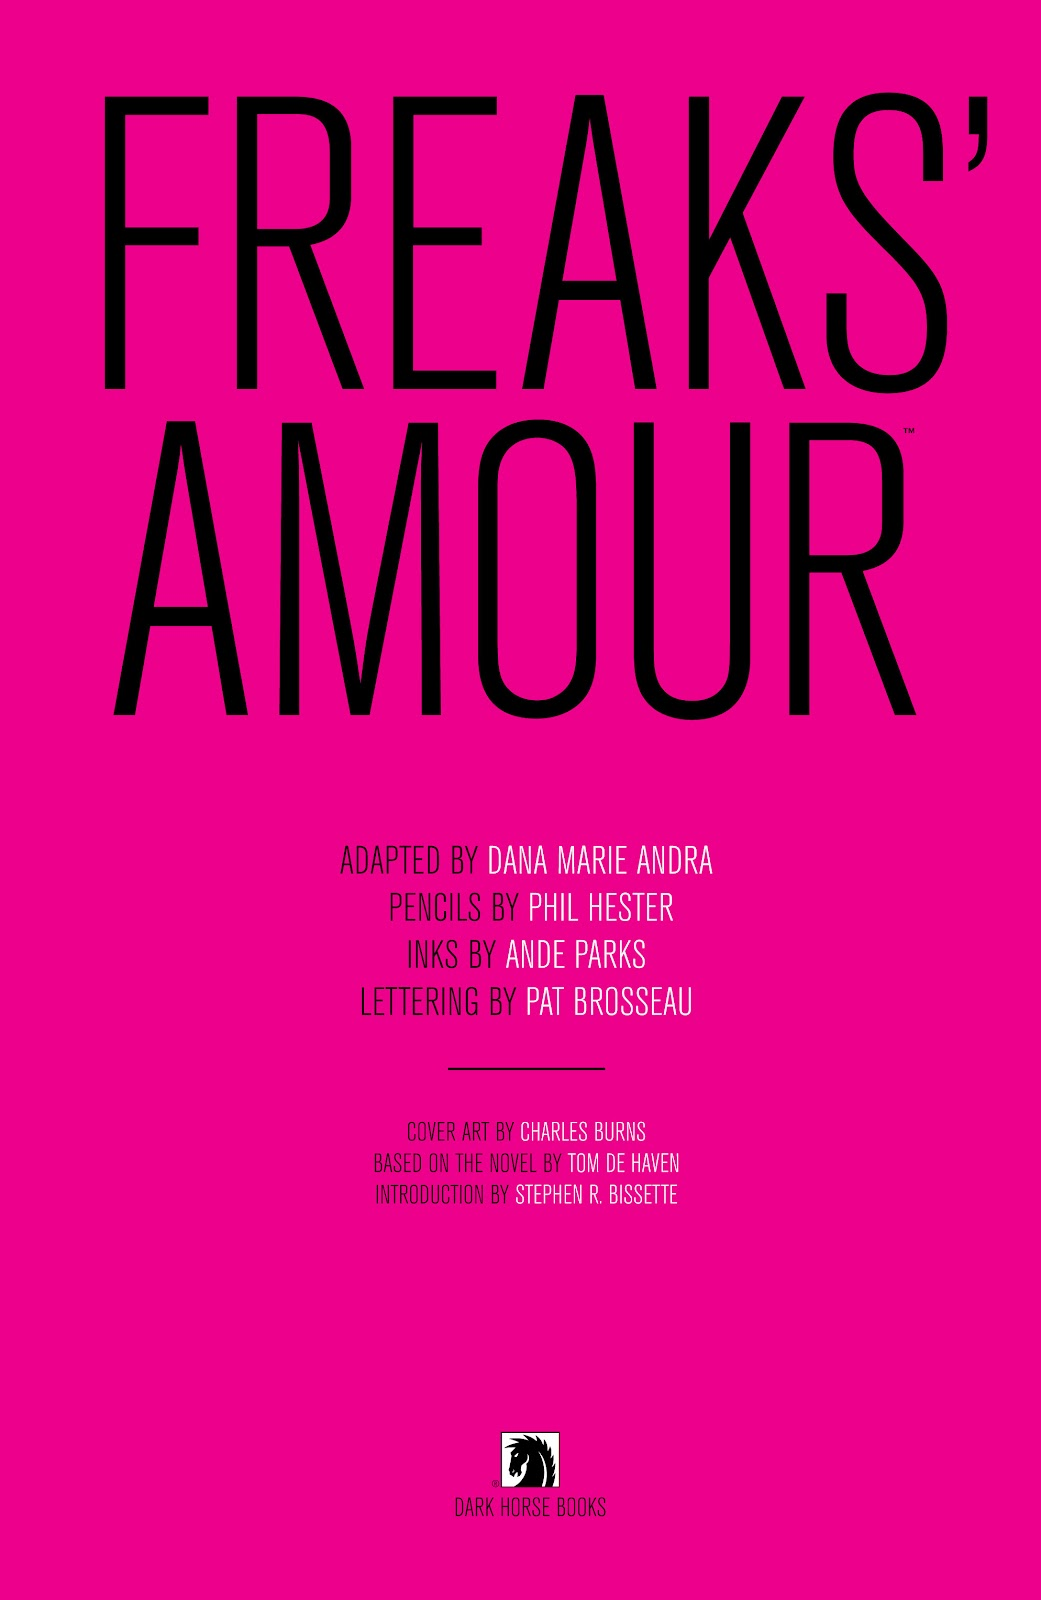 Read online Freaks' Amour comic -  Issue # TPB (Part 1) - 4